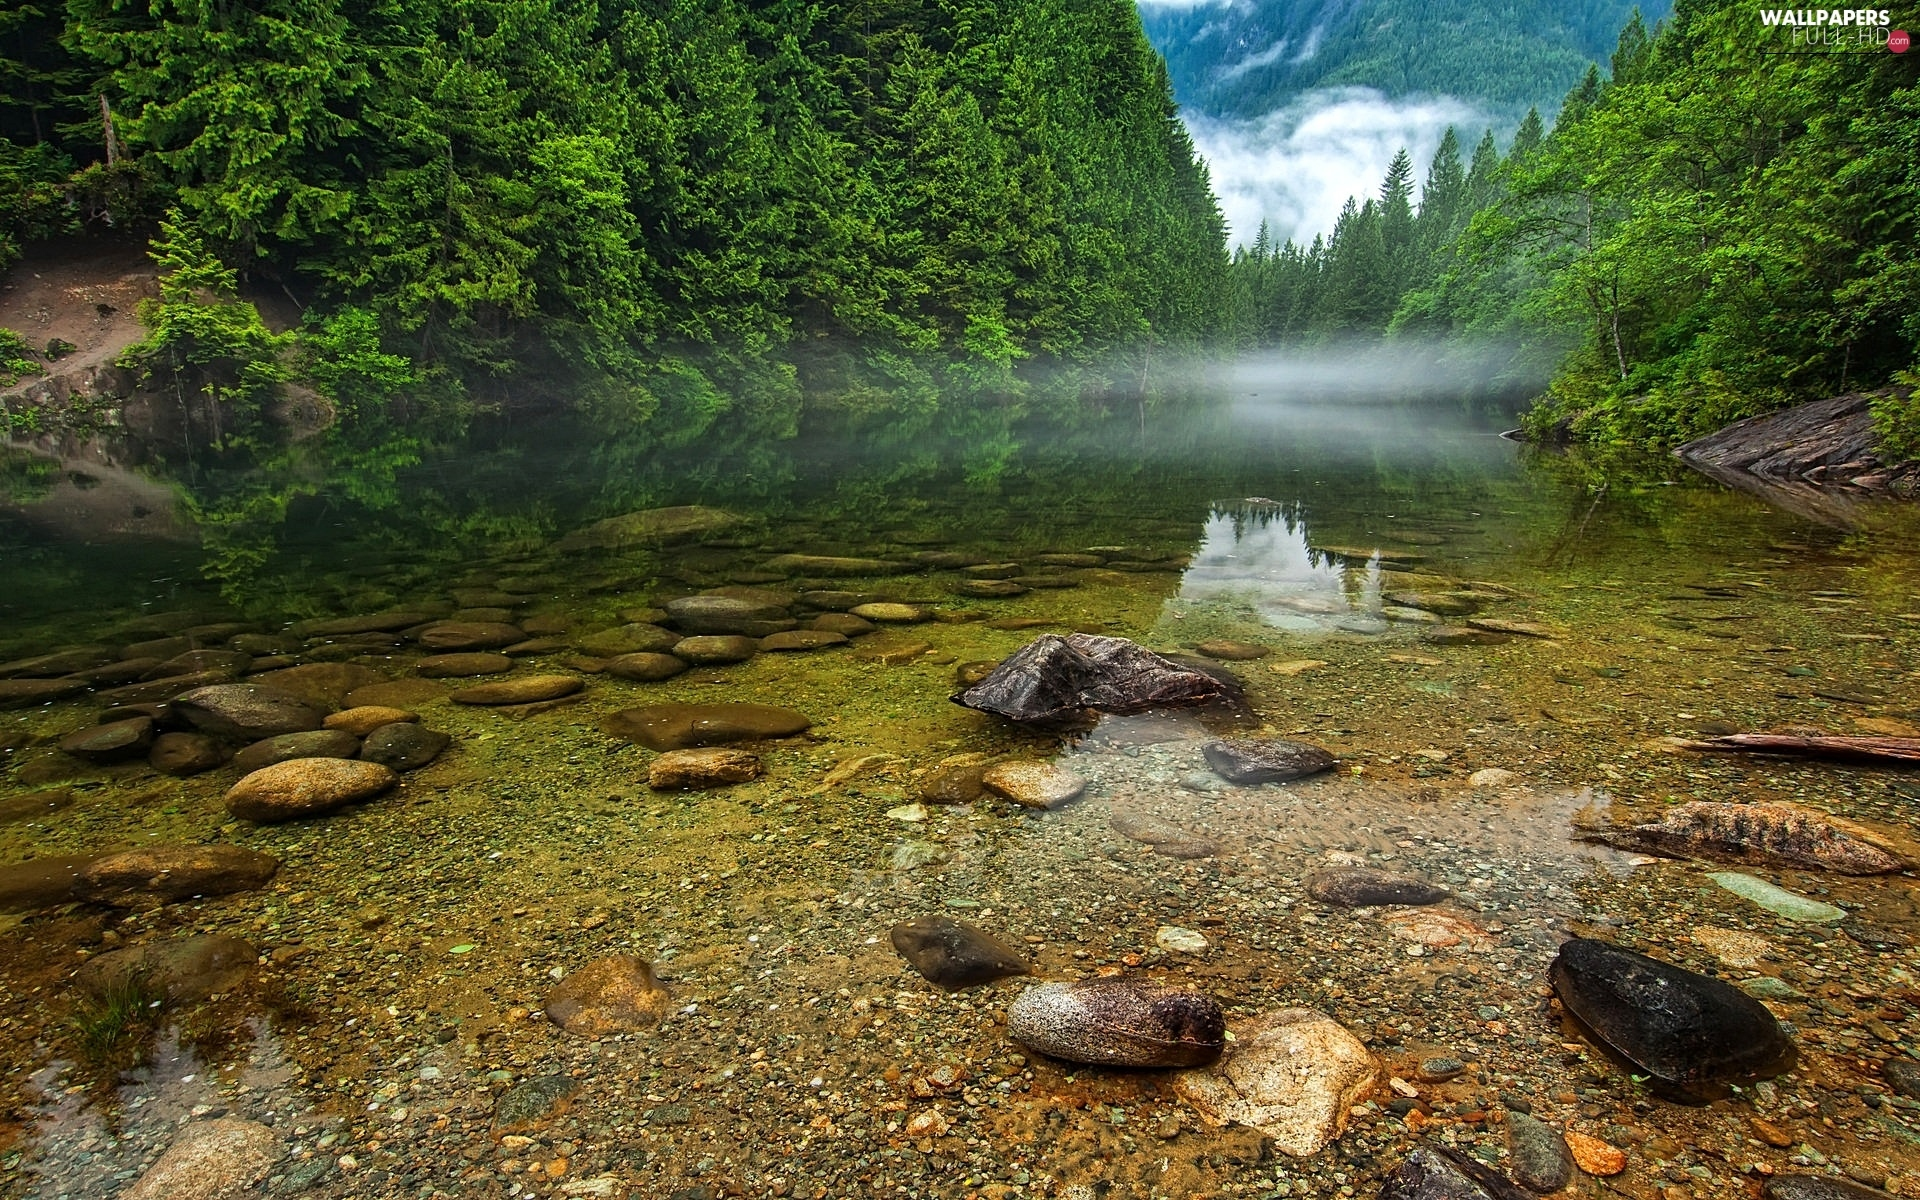 forest, Fog, lake, Canada, Stones